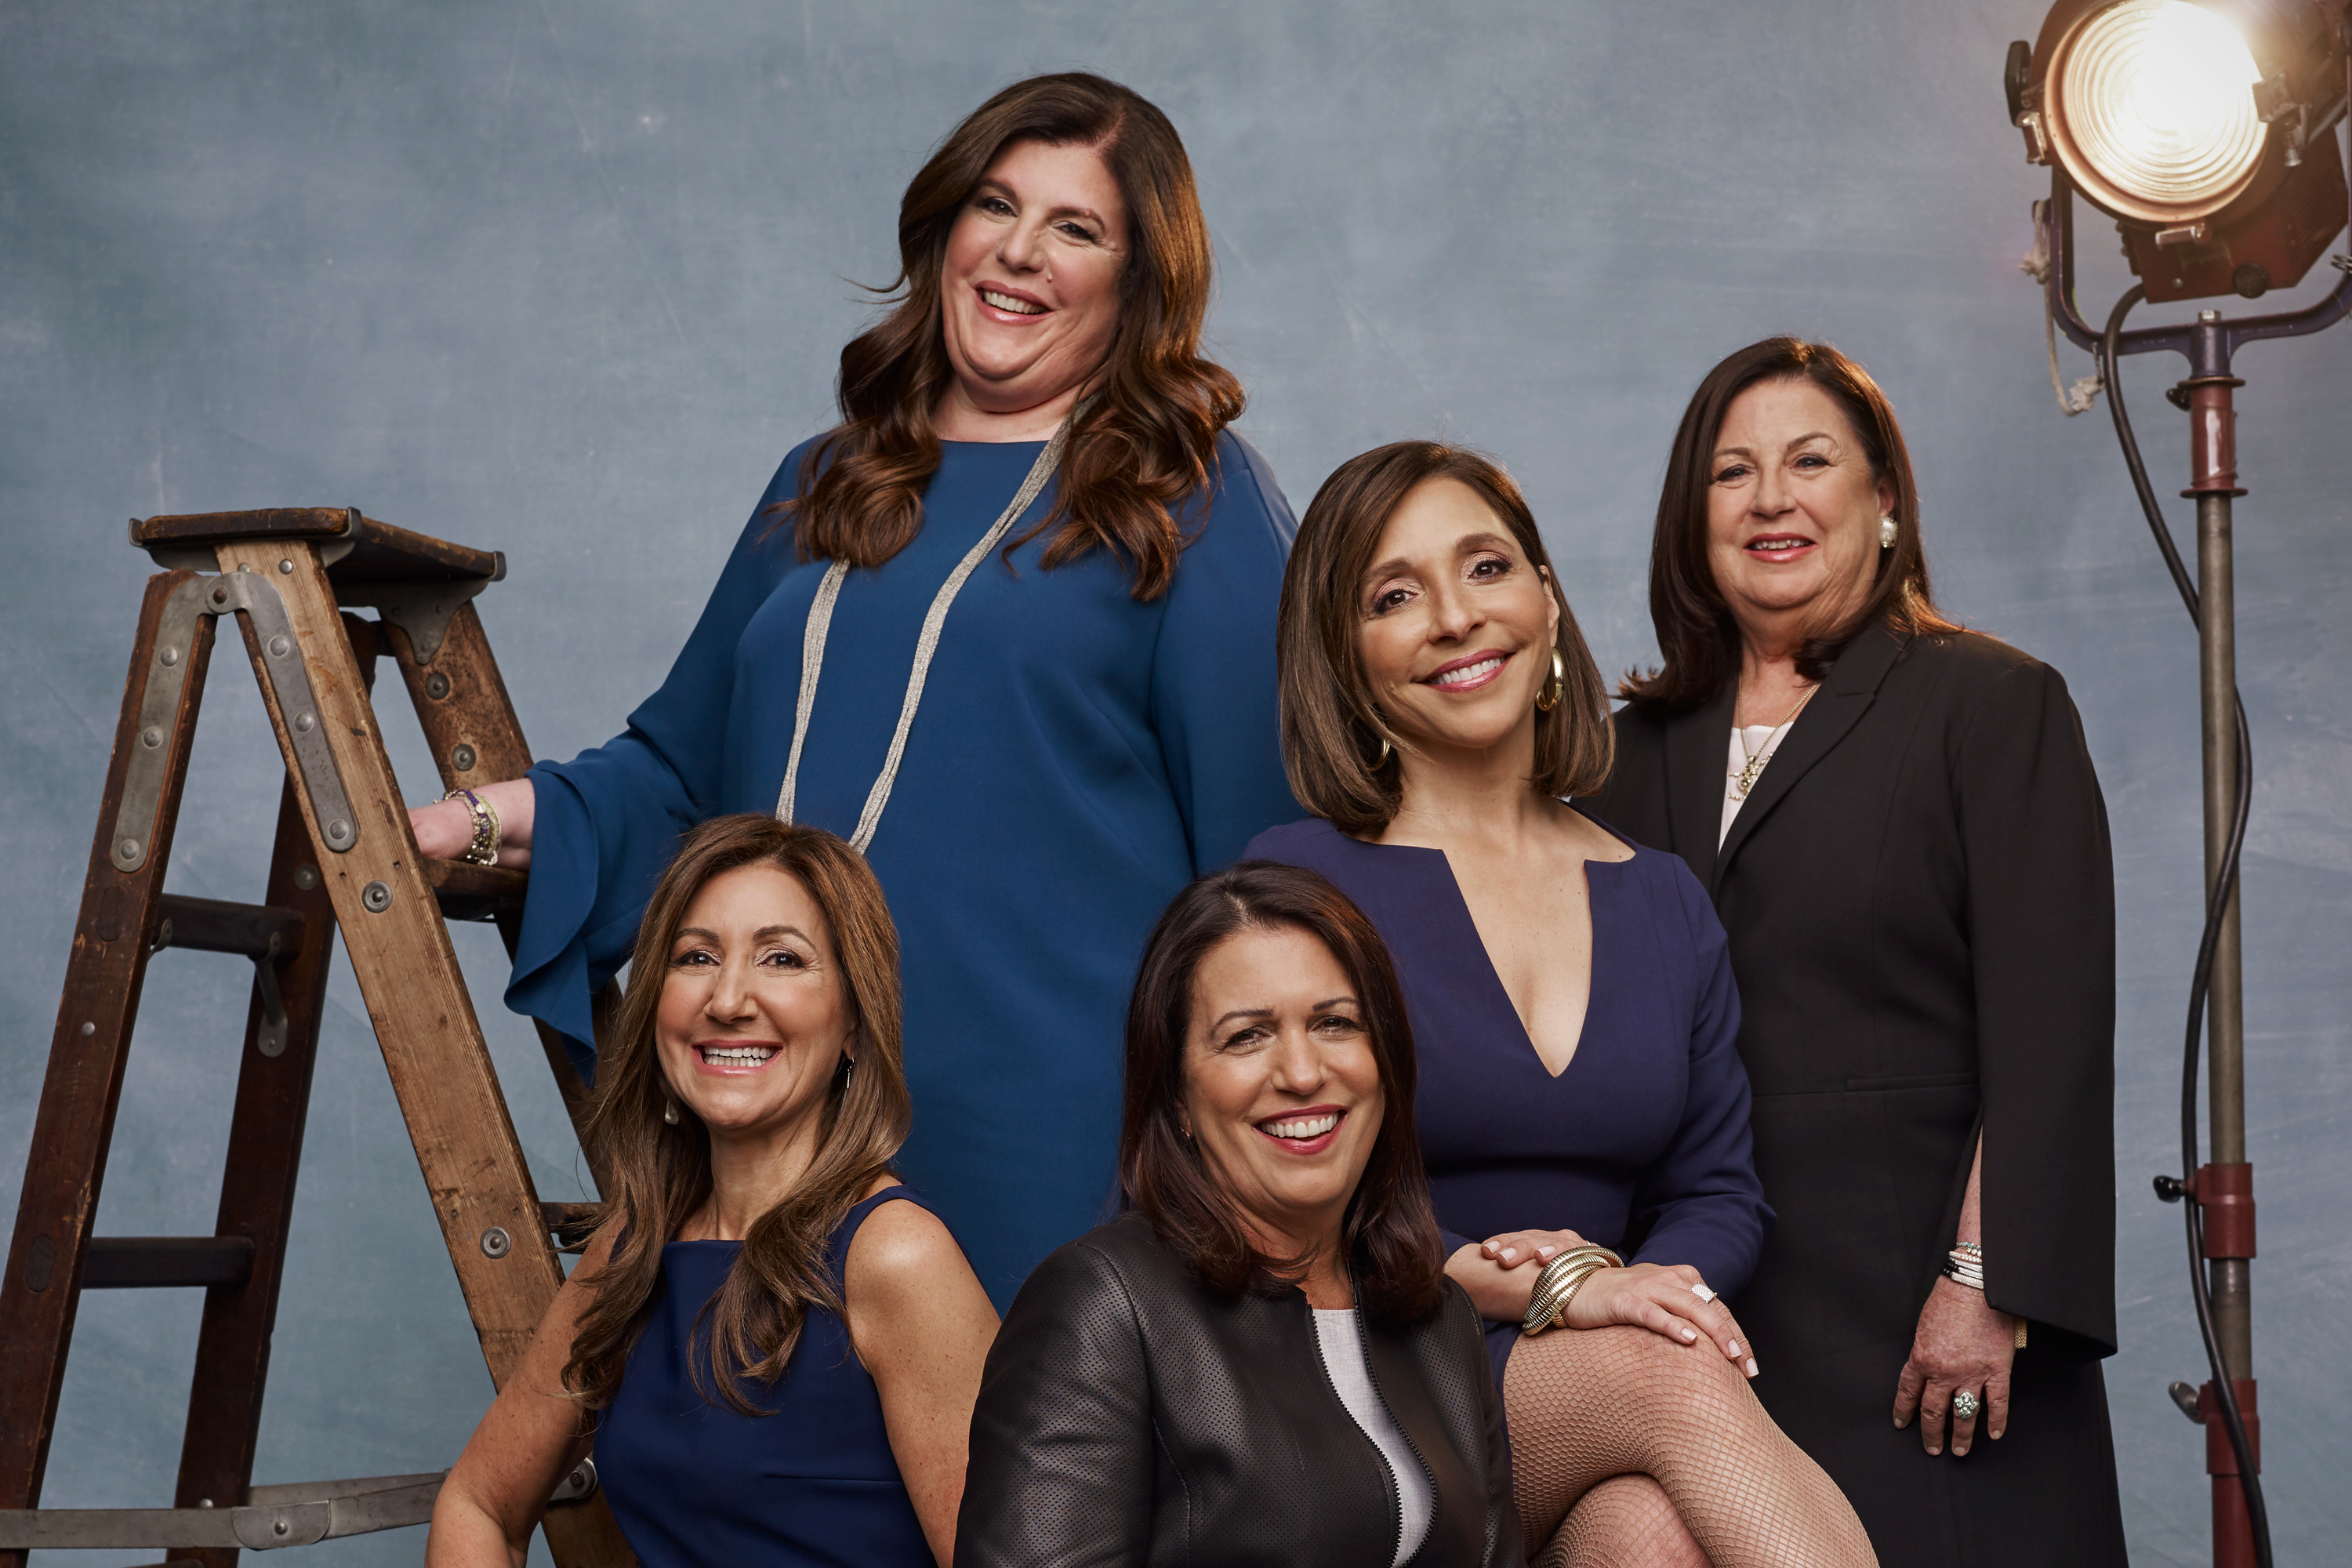 Linda Yaccarino, Donna Speciale, Marianne Gambelli, Jo Ann Ross and Rita Ferro on how they rule network TV ad sales